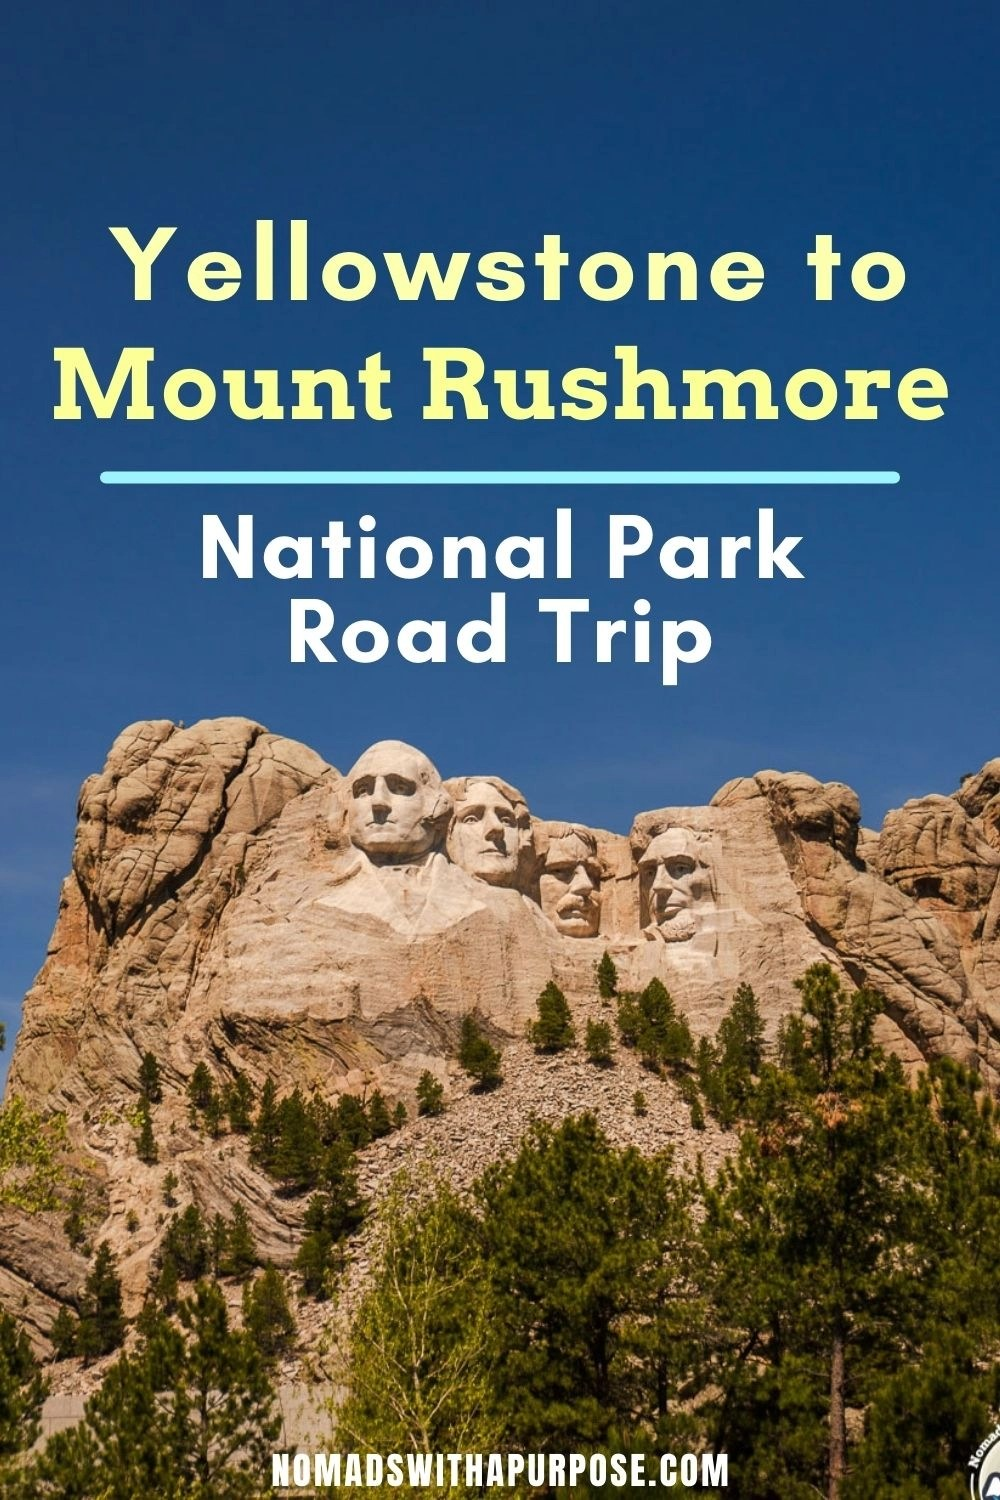 Yellowstone to Rushmore National Park Road Trip